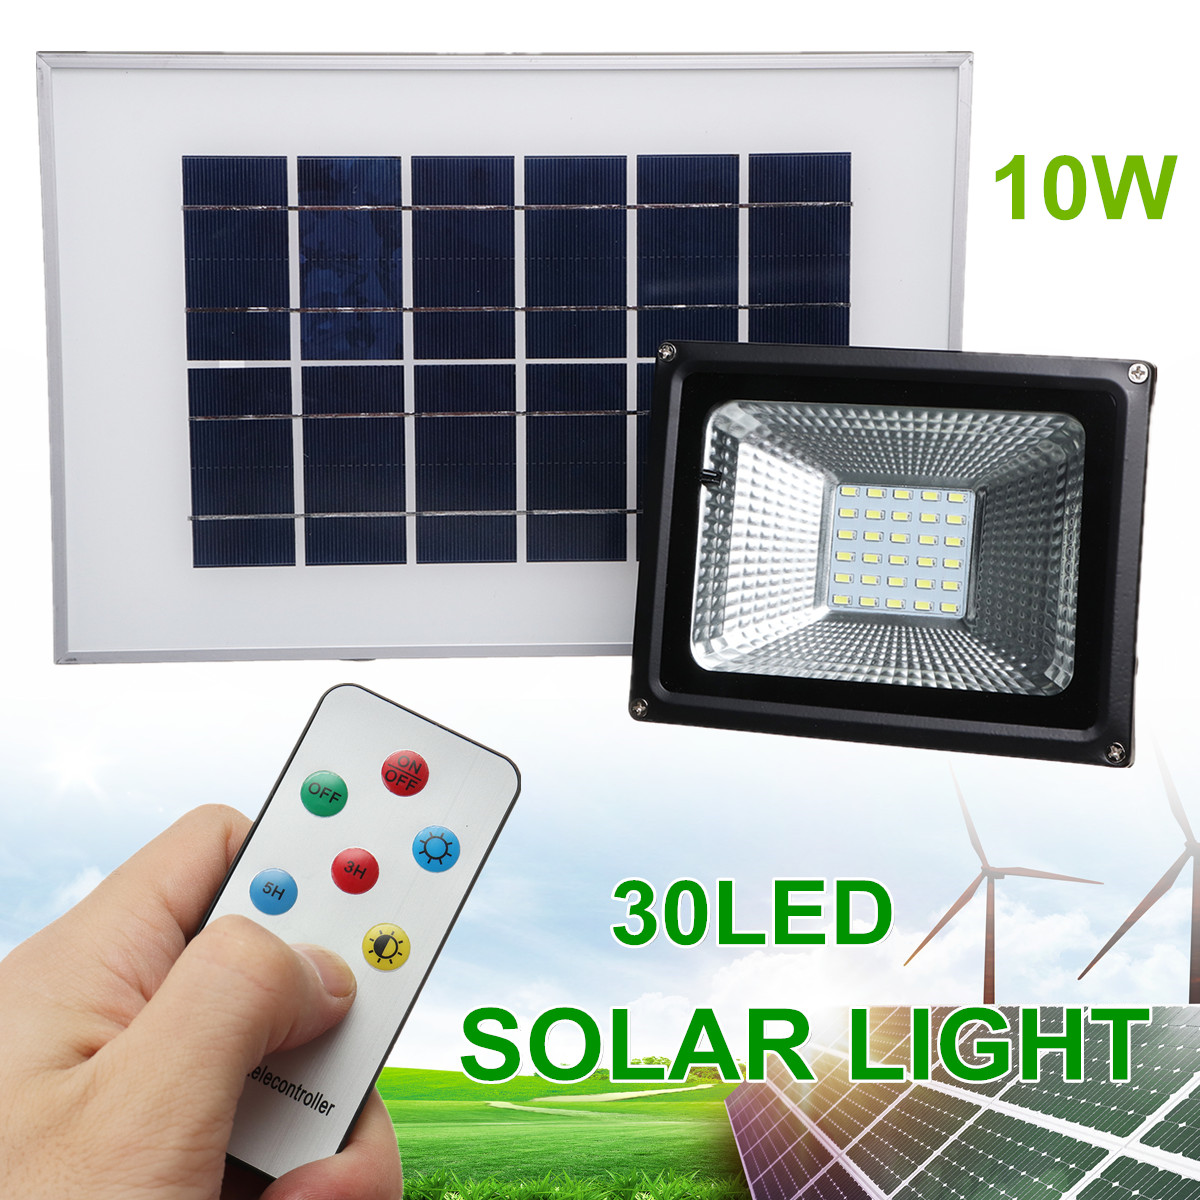 Outdoor Garden 10W 30 LED Solar Power Flood Light Remote Control Lawn Lighting Lamp Reusable Super Bright Intelligent Sunlight цена 2017